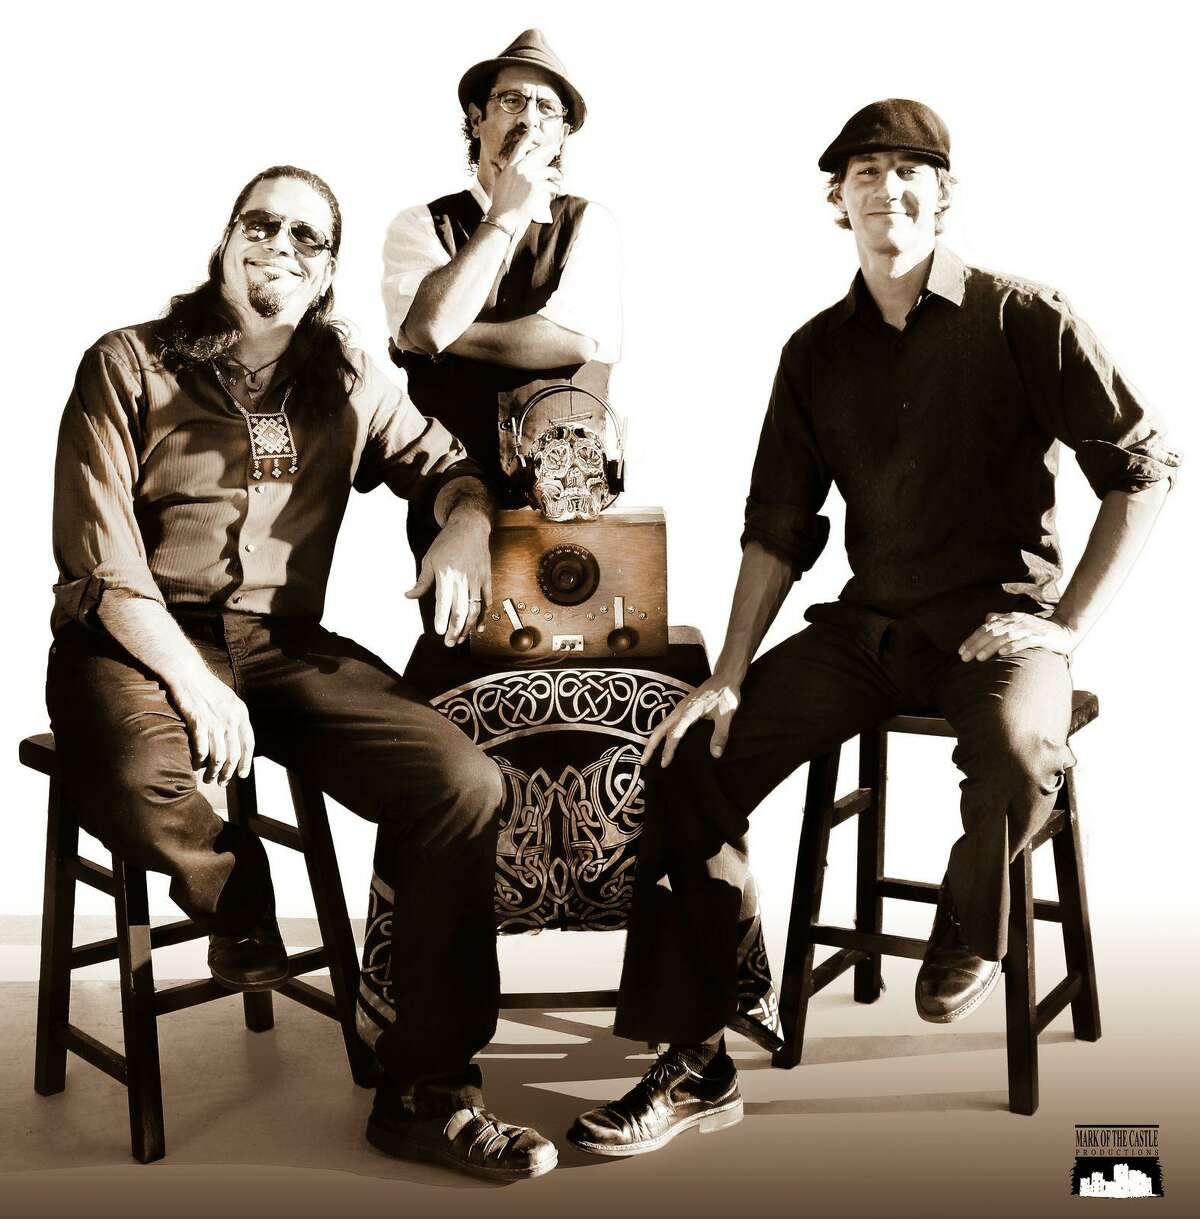 Del Castillo Trio will perform at 8 p.m. on Aug. 13 at Main Street Crossing in Tomball.